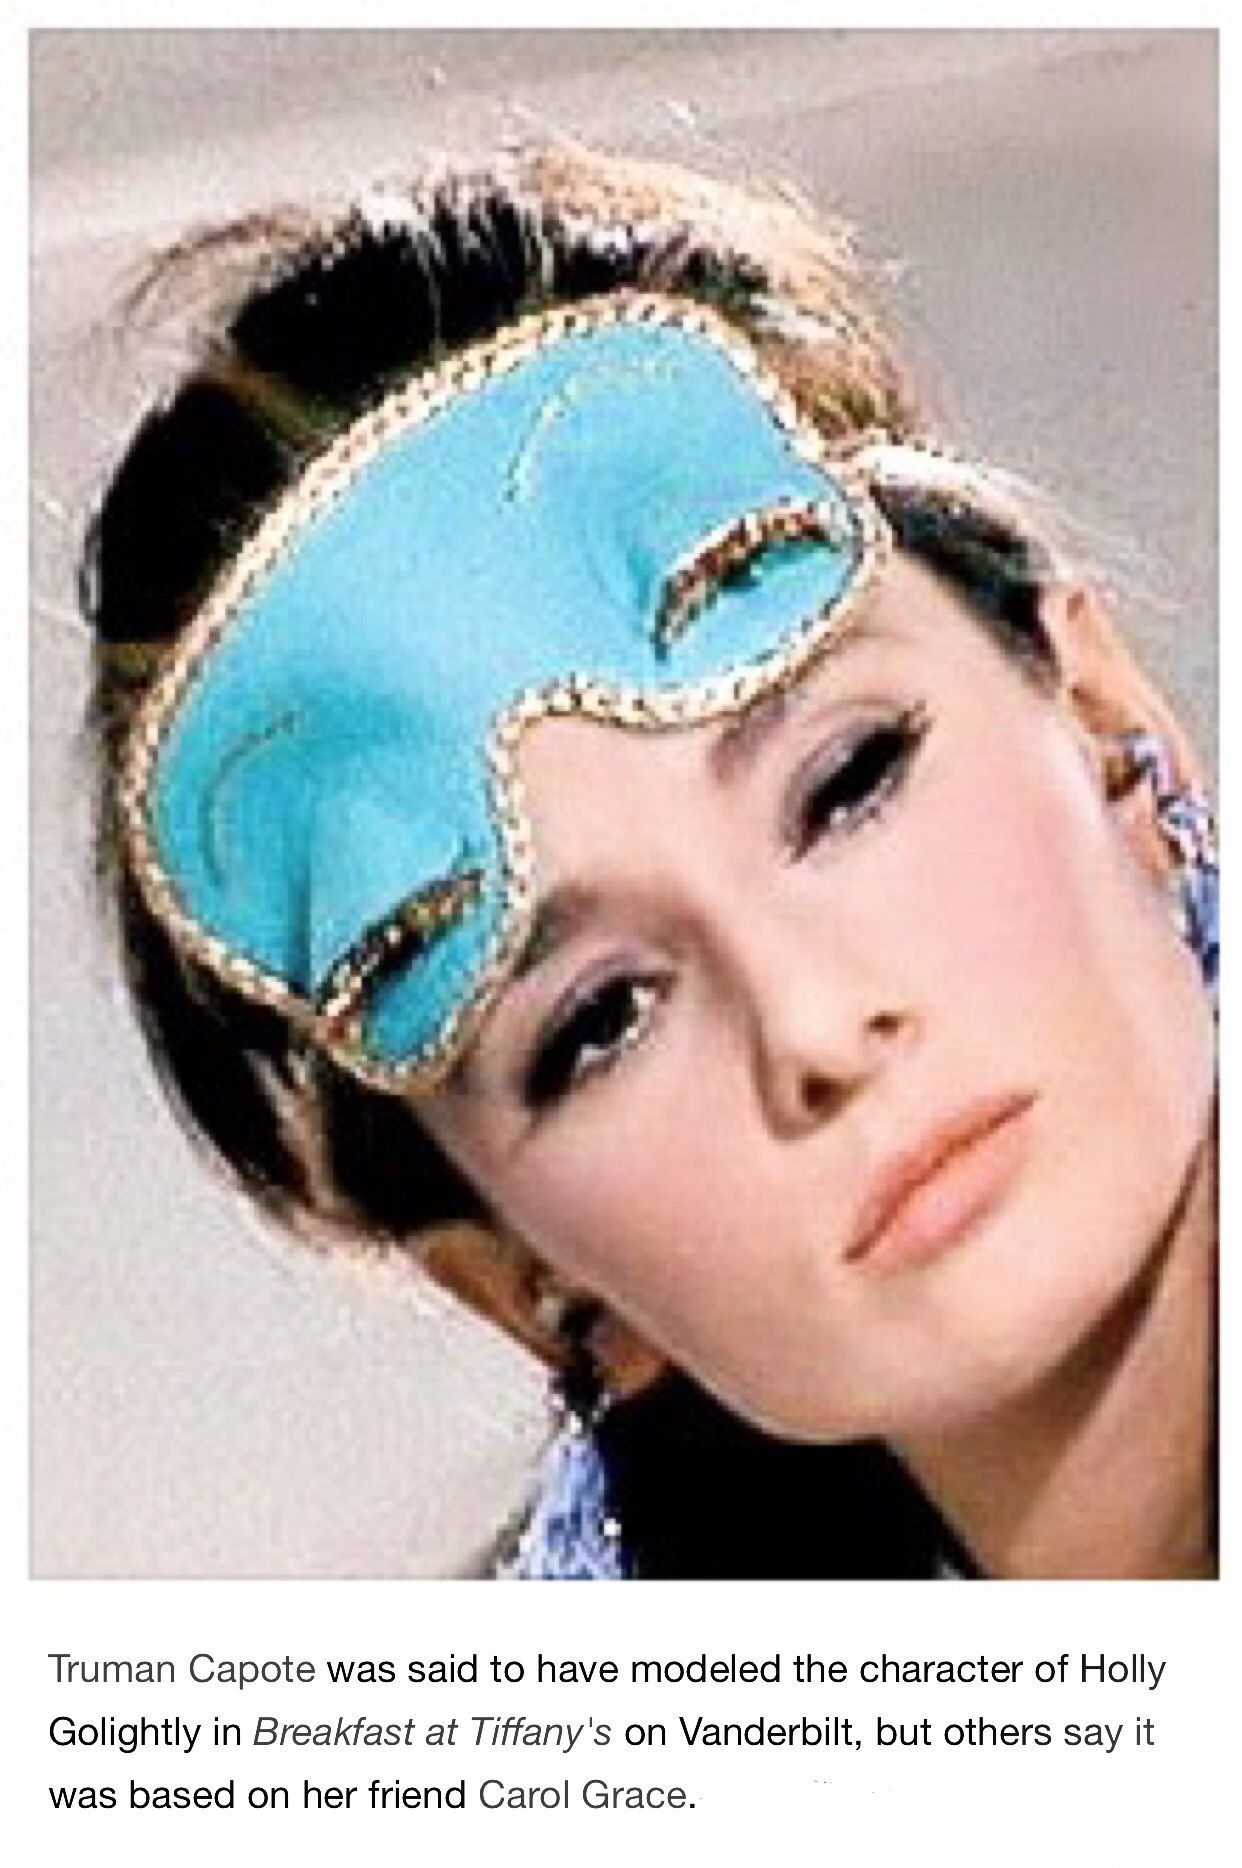 1e648045b Truman Capote was said to have modeled the character of Holly Golightly in  Breakfast at Tiffany's on [Gloria] Vanderbilt, but others say it was based  on her ...